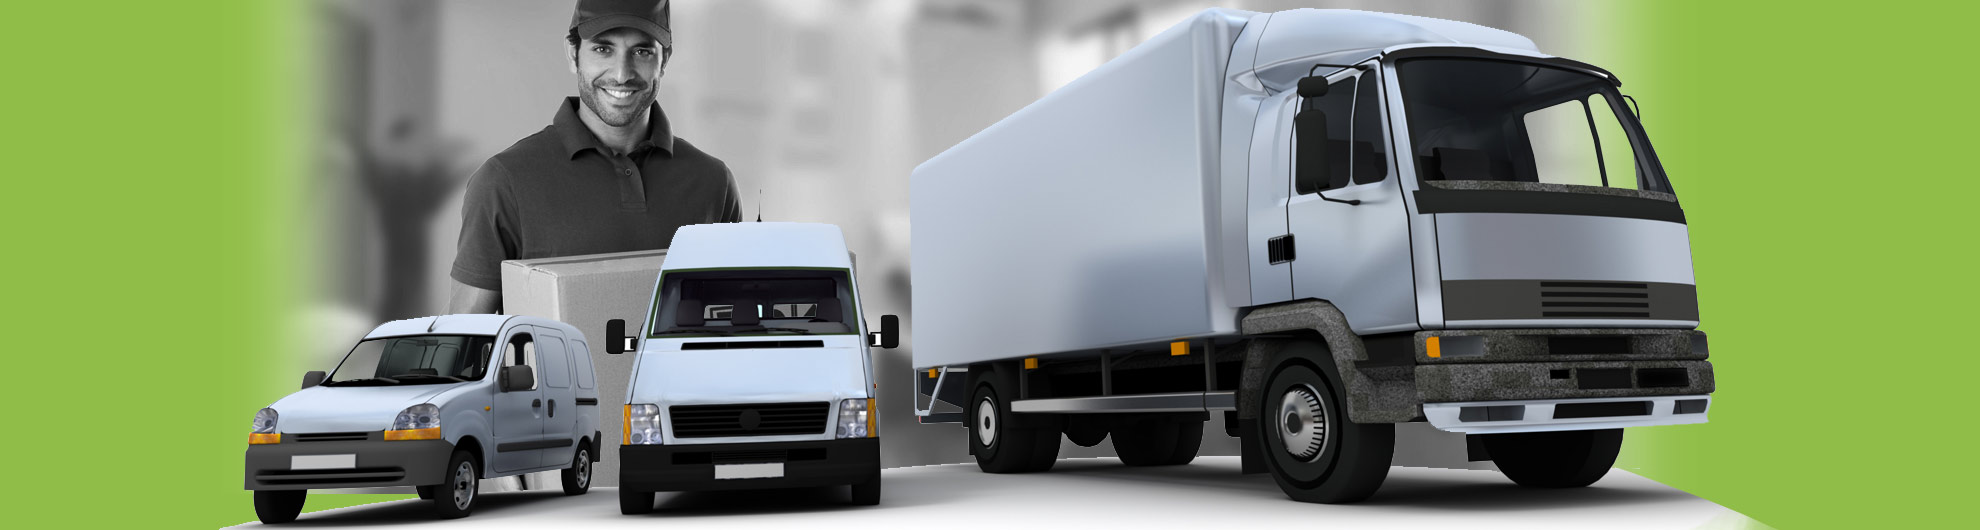 Salwa  International Movers - Shipping Companies